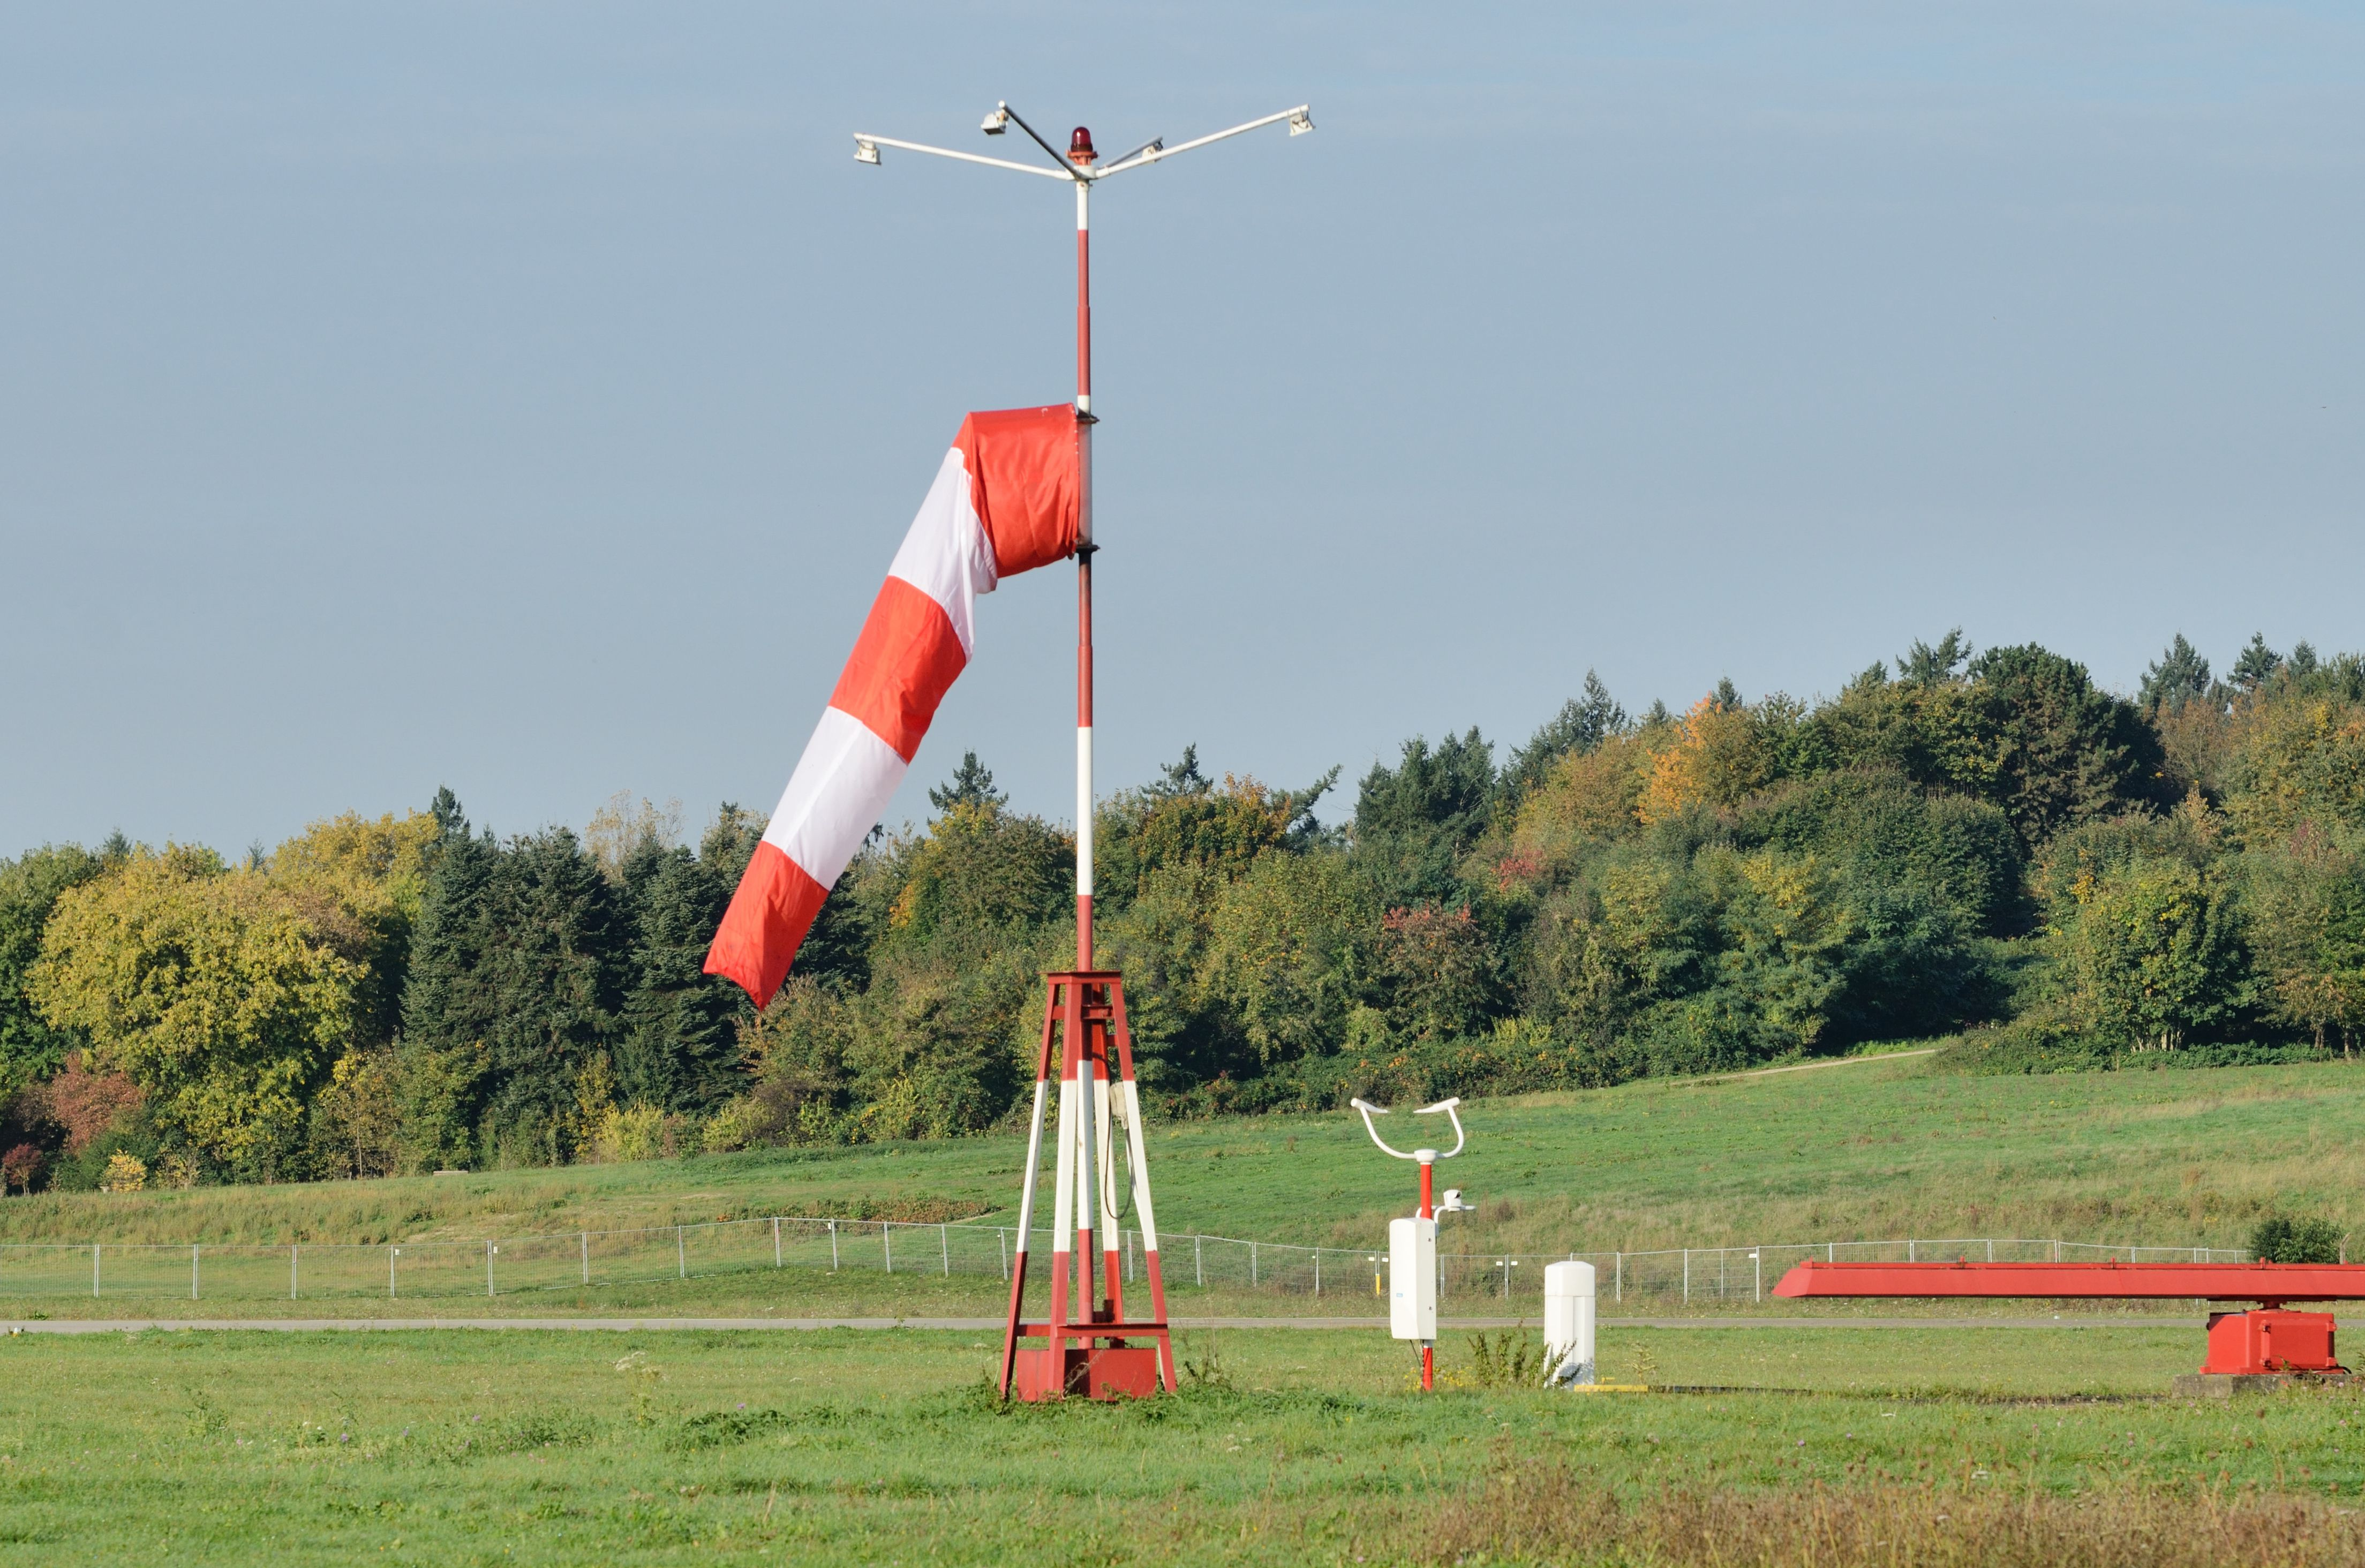 How To Interpret The Airport Windsock